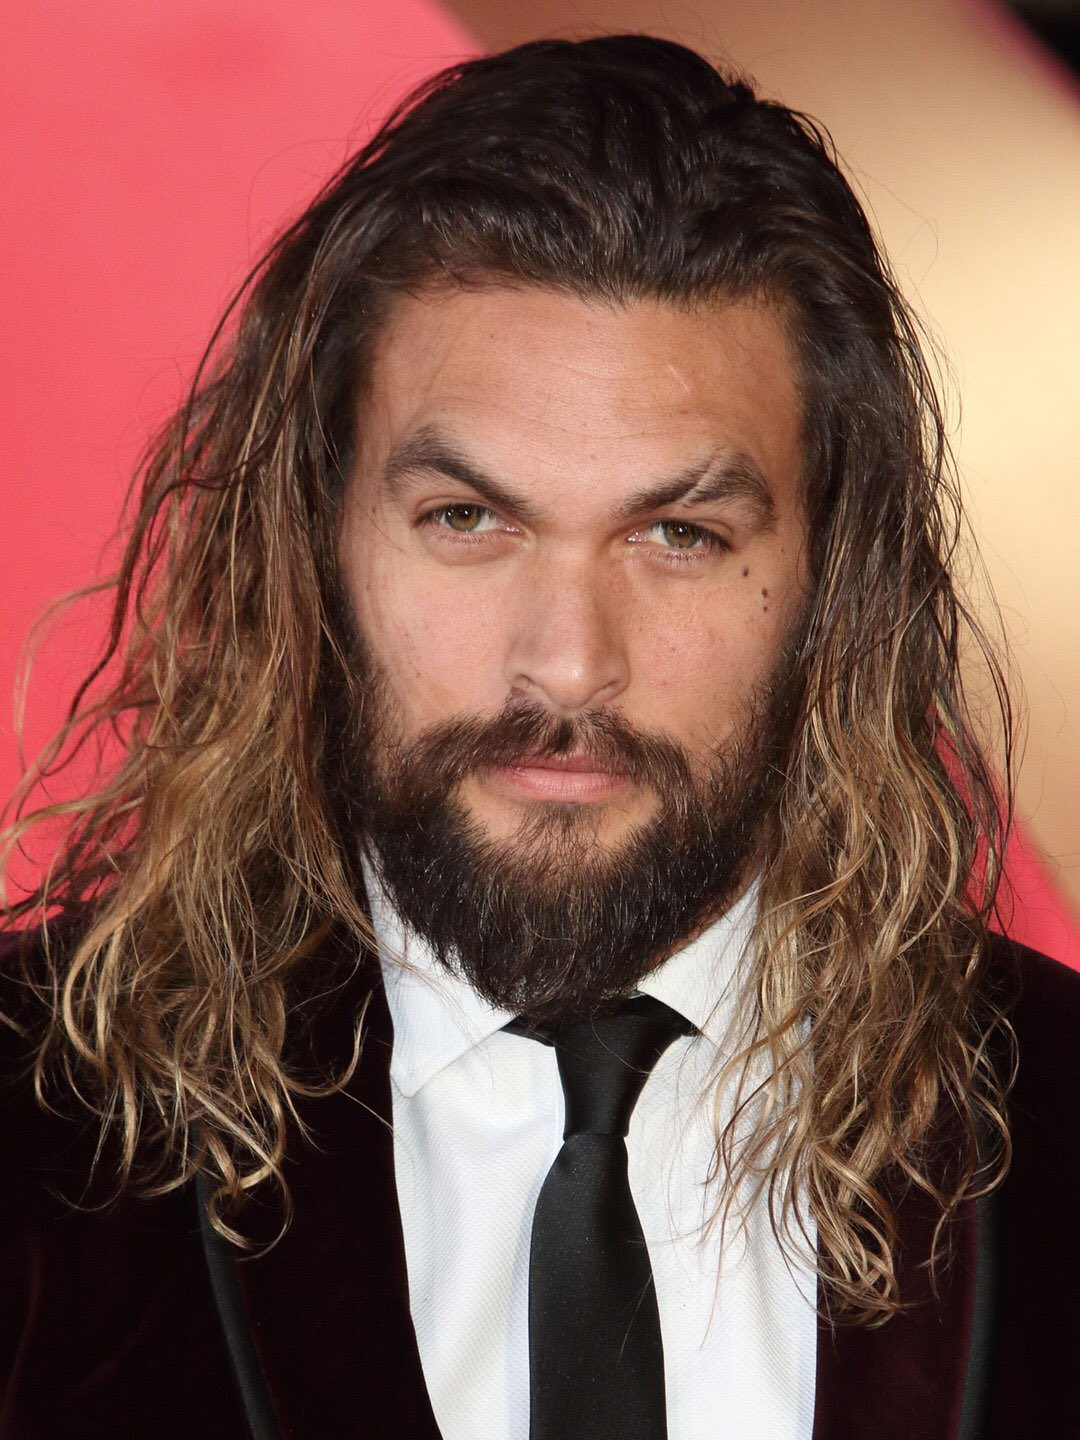 Happy birthday Jason Momoa hope you have a good one!